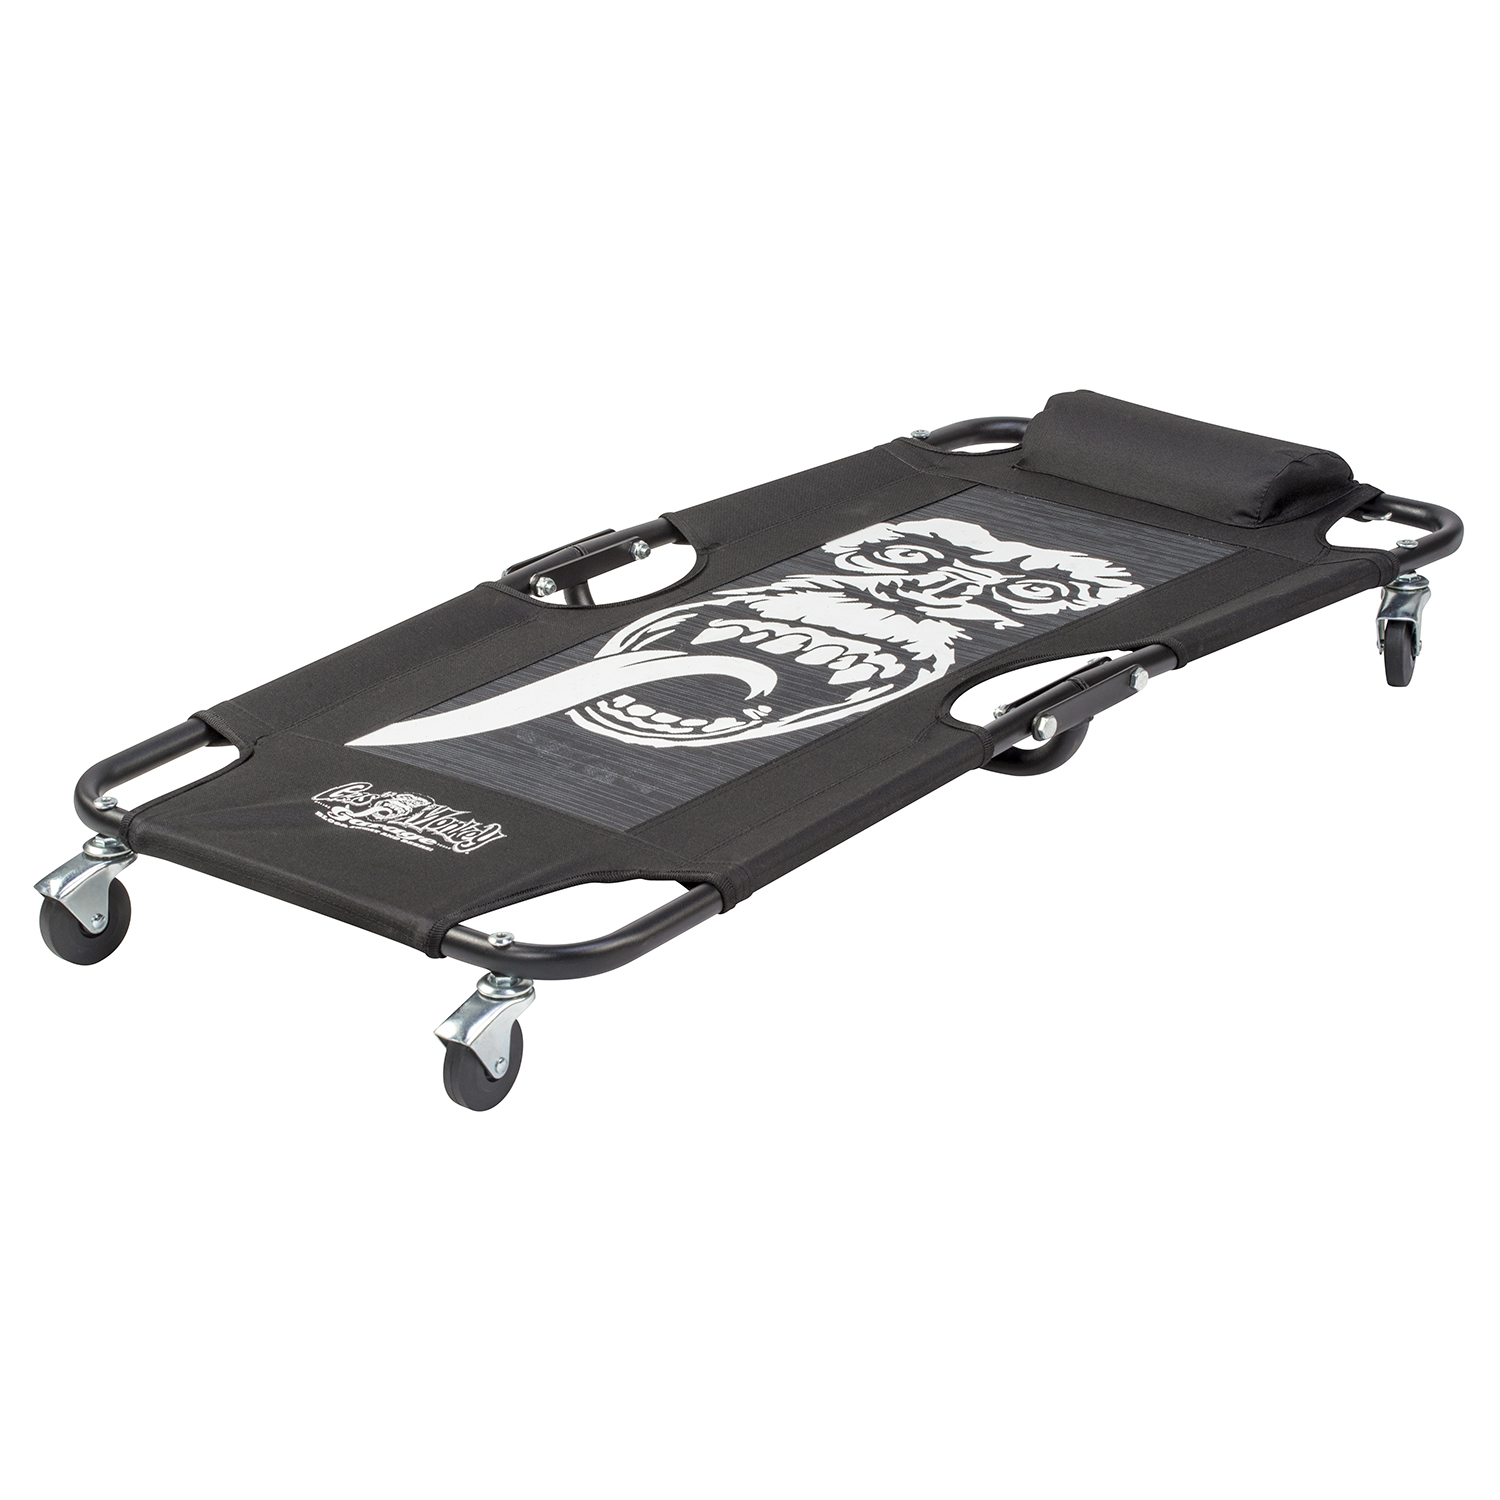 Gas Monkey Garage Foldable Mechanic Mesh Creeper - 4 Rolling Casters with Center Support - Lightweight and Portable with 350 Lbs Capacity Great for Garage Automotive